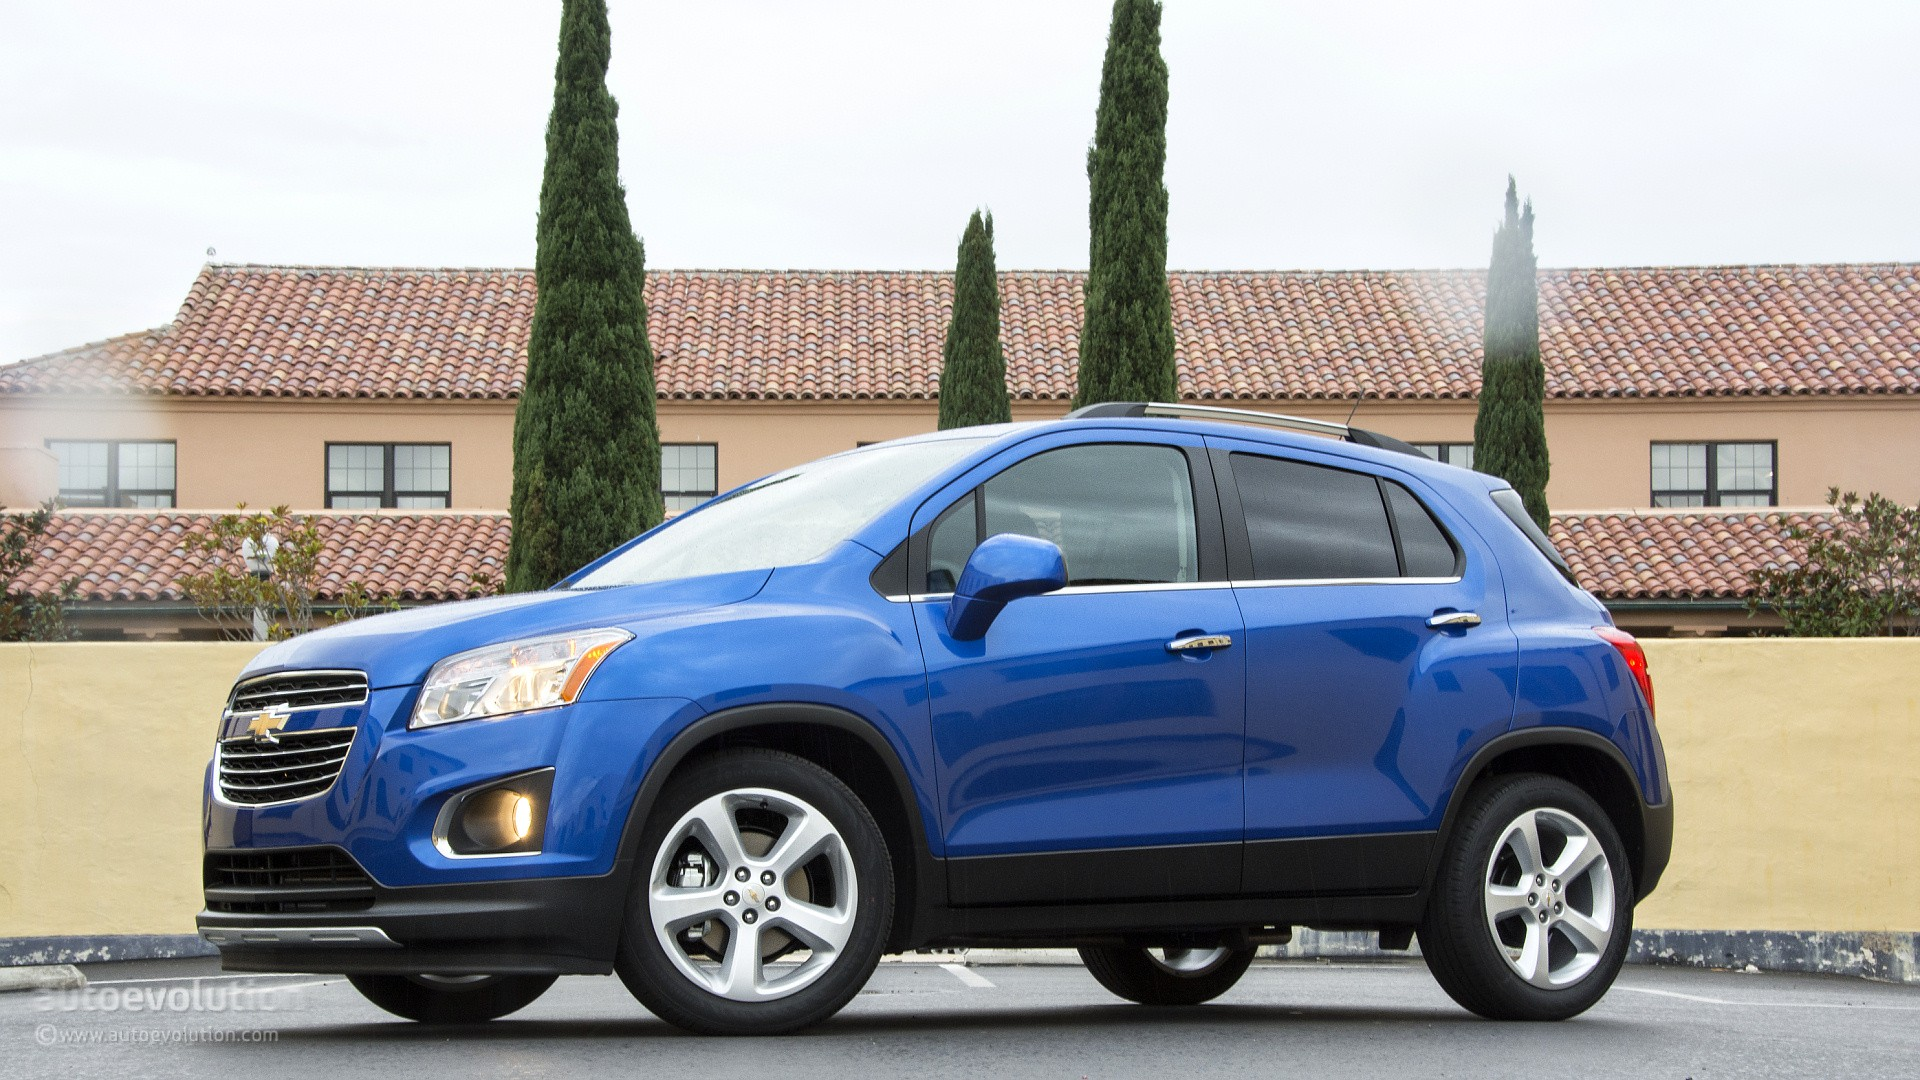 2015 Chevrolet Trax Review - autoevolution